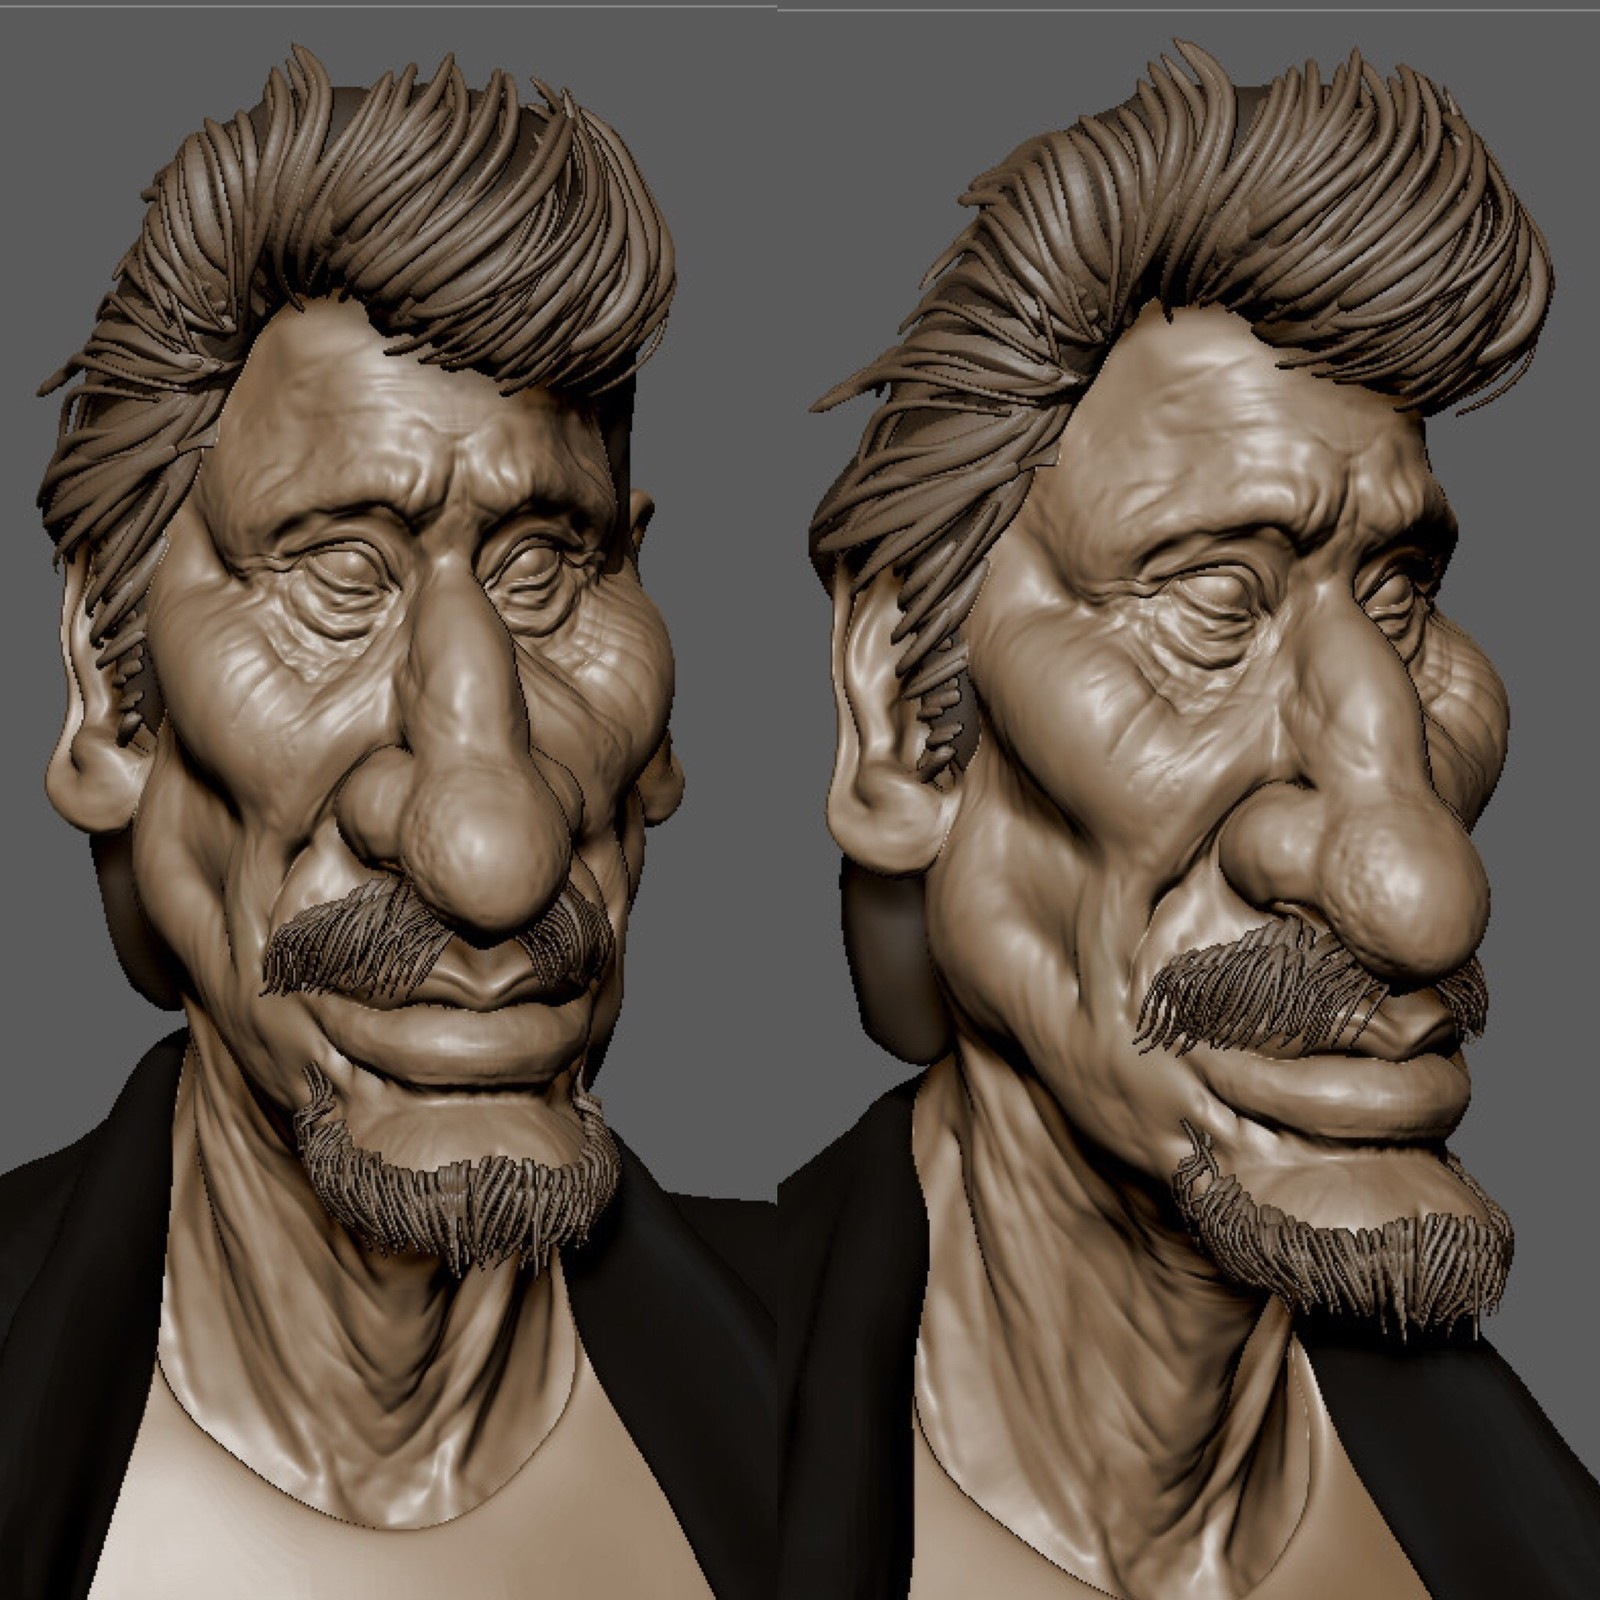 speed sculpt 1h45 of Johnny Hallyday RIP caricature